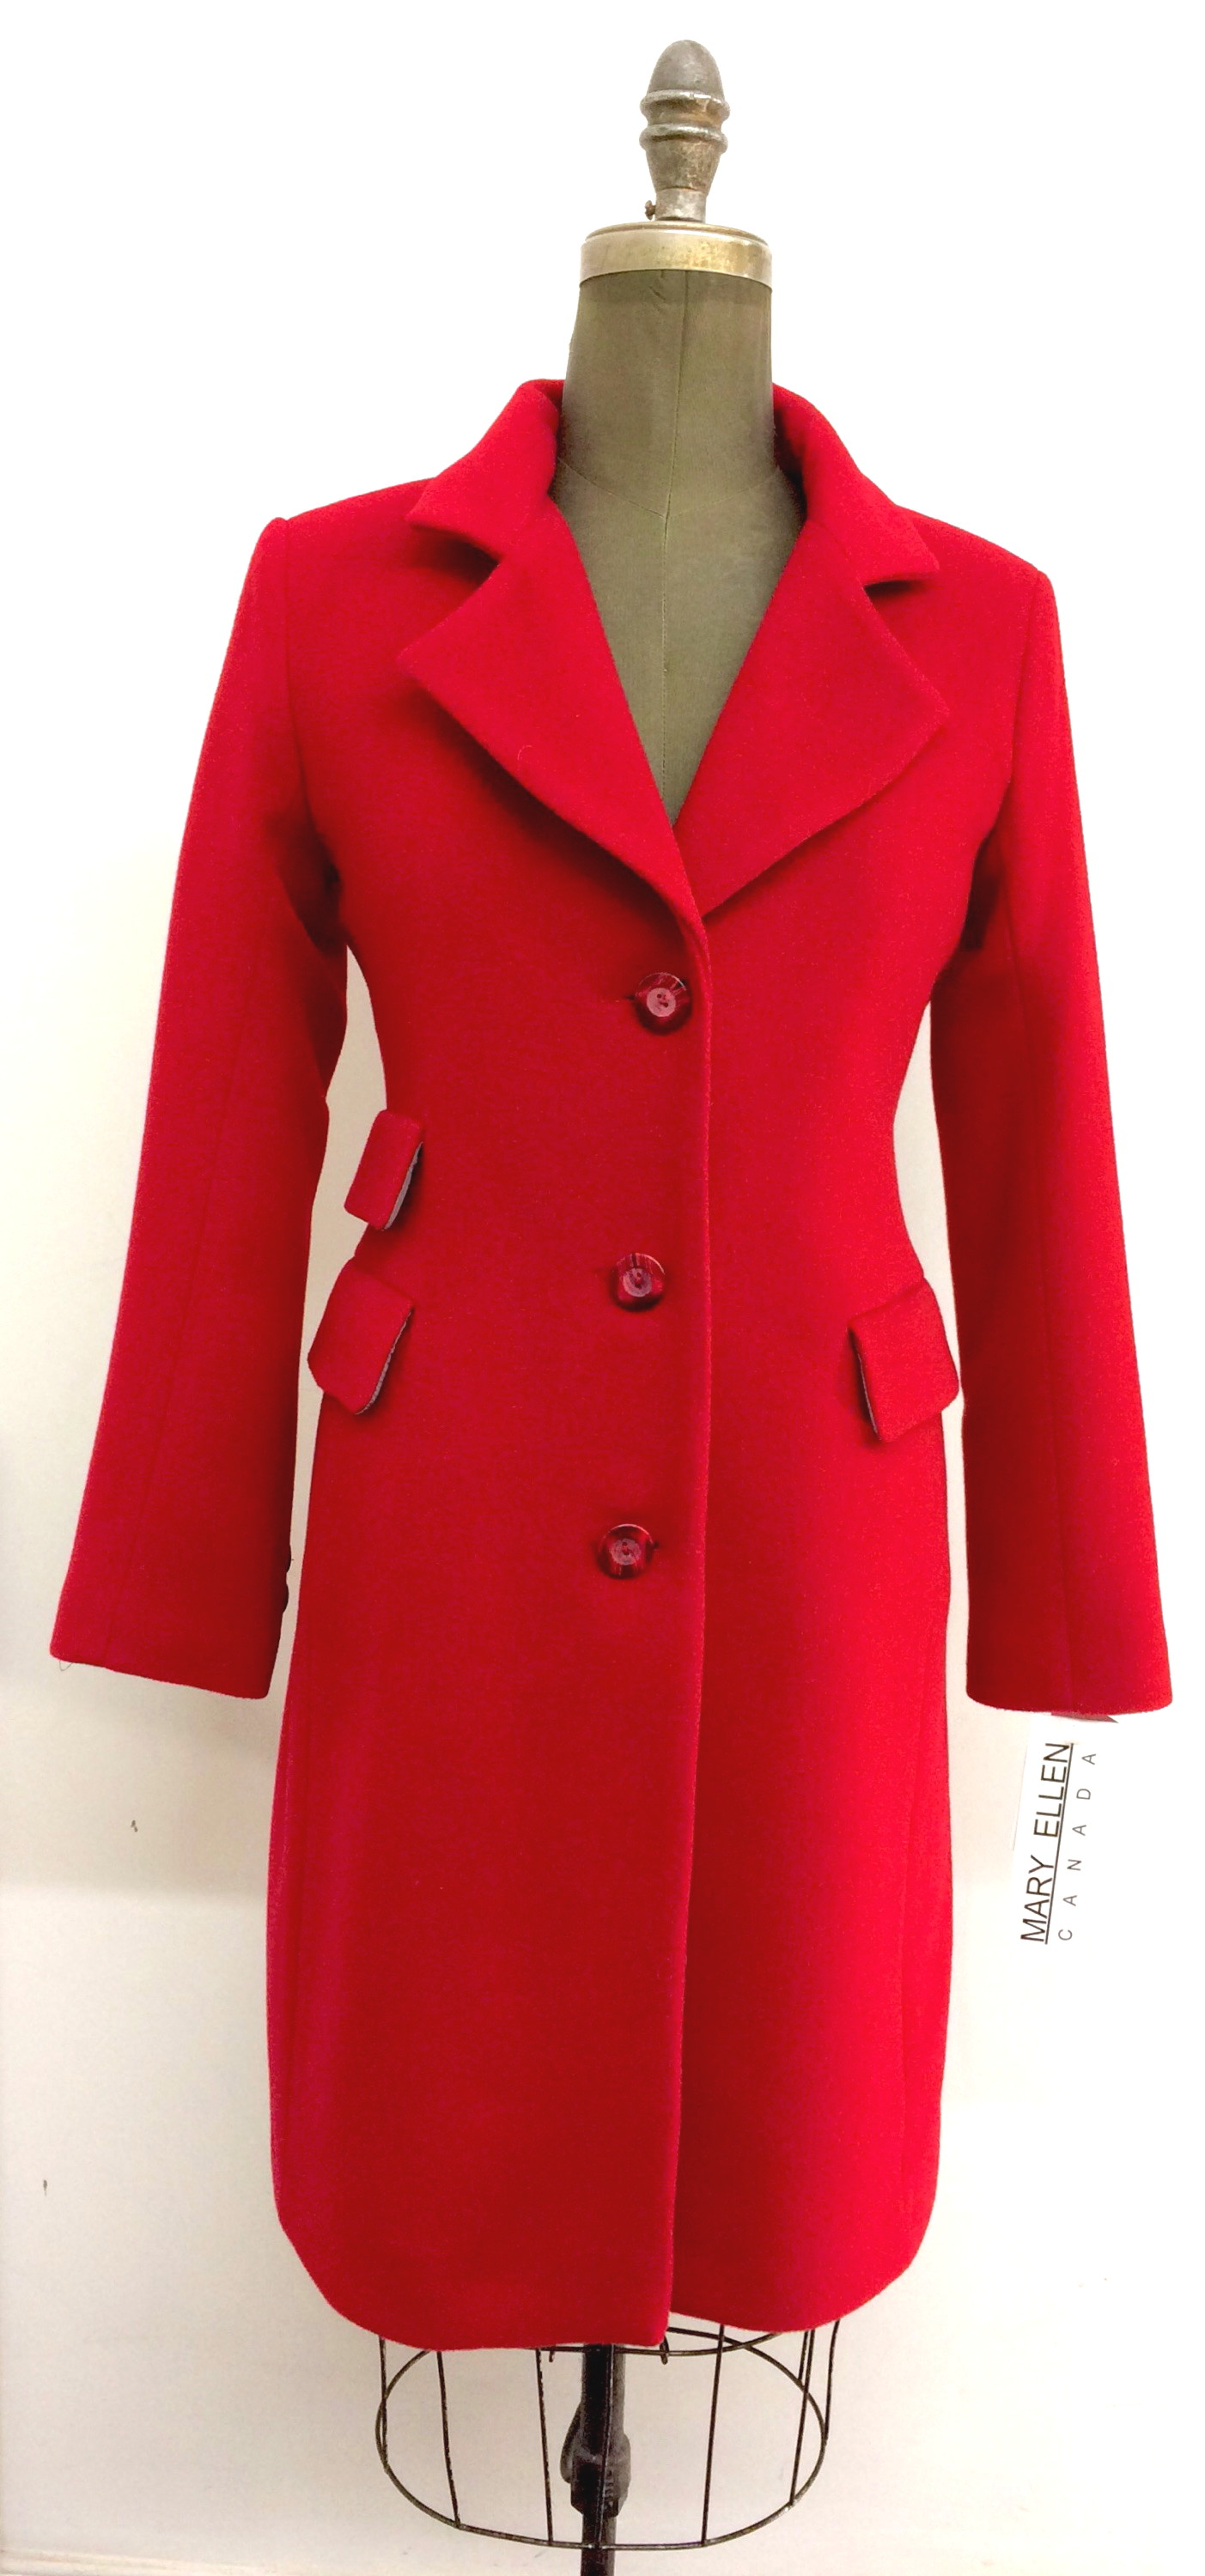 Style # LF1596-6  Ruby Red   Features:  Tailored British look, single breasted, triple pocket, knee length coat. Sleek clean lines, fitted through the waist.  Notched collar.  Buttons dyed to match.  Various Fabrics:  Cashmere or Cashmere Blend,  Alpaca,  100% Pure Virgin Wool and more  In-stock colours: Black, Ruby, Navy, Camel, Charcoal,  Black/Pinstripe Blue or can be custom made in any colour or fabric.   Size: S,M,L  Price: $ 449 and up